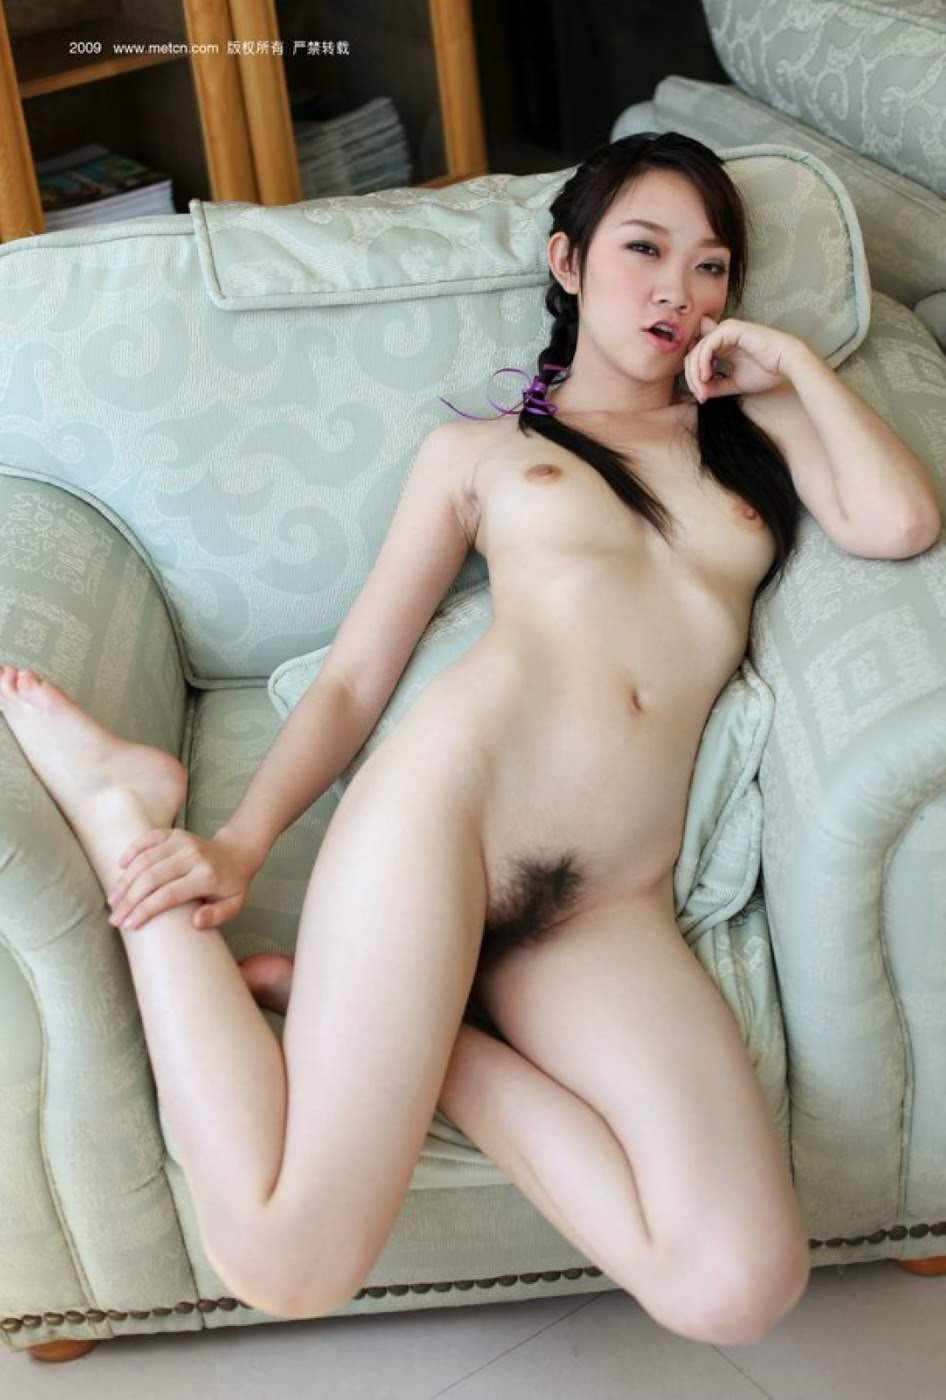 s-MetCN_Chinese_Naked_Girls-068-2009-06-11-Yu-Wen.rar.m068_19 MetCN Naked_Girls-068-2009-06-11-Yu-Wen re